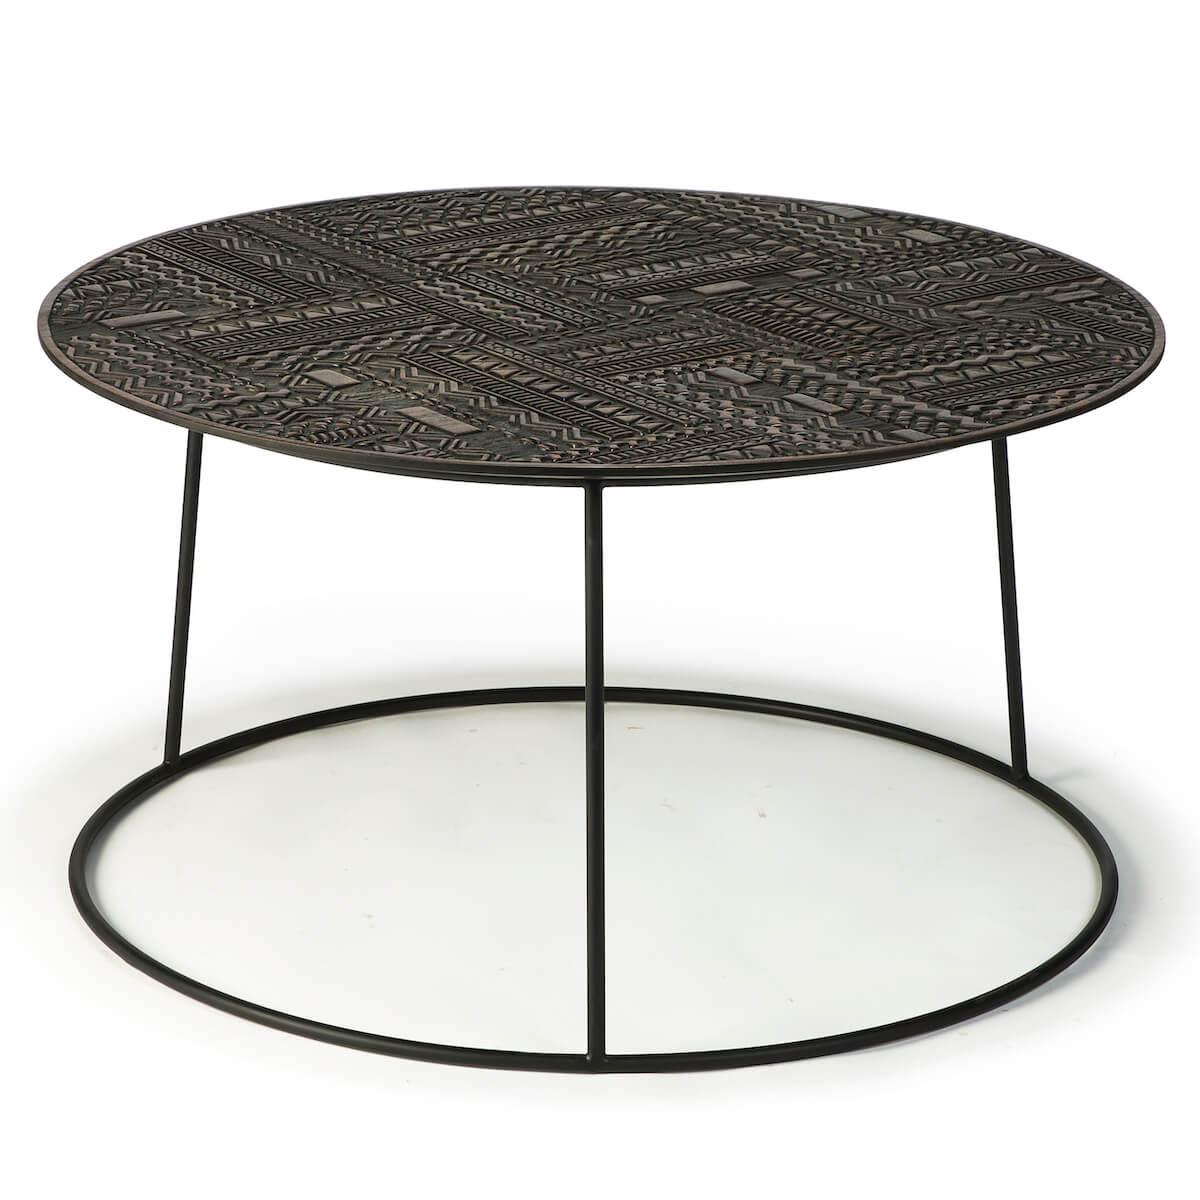 Table basse ronde 83cm TABWA Ethnicraft teck noir